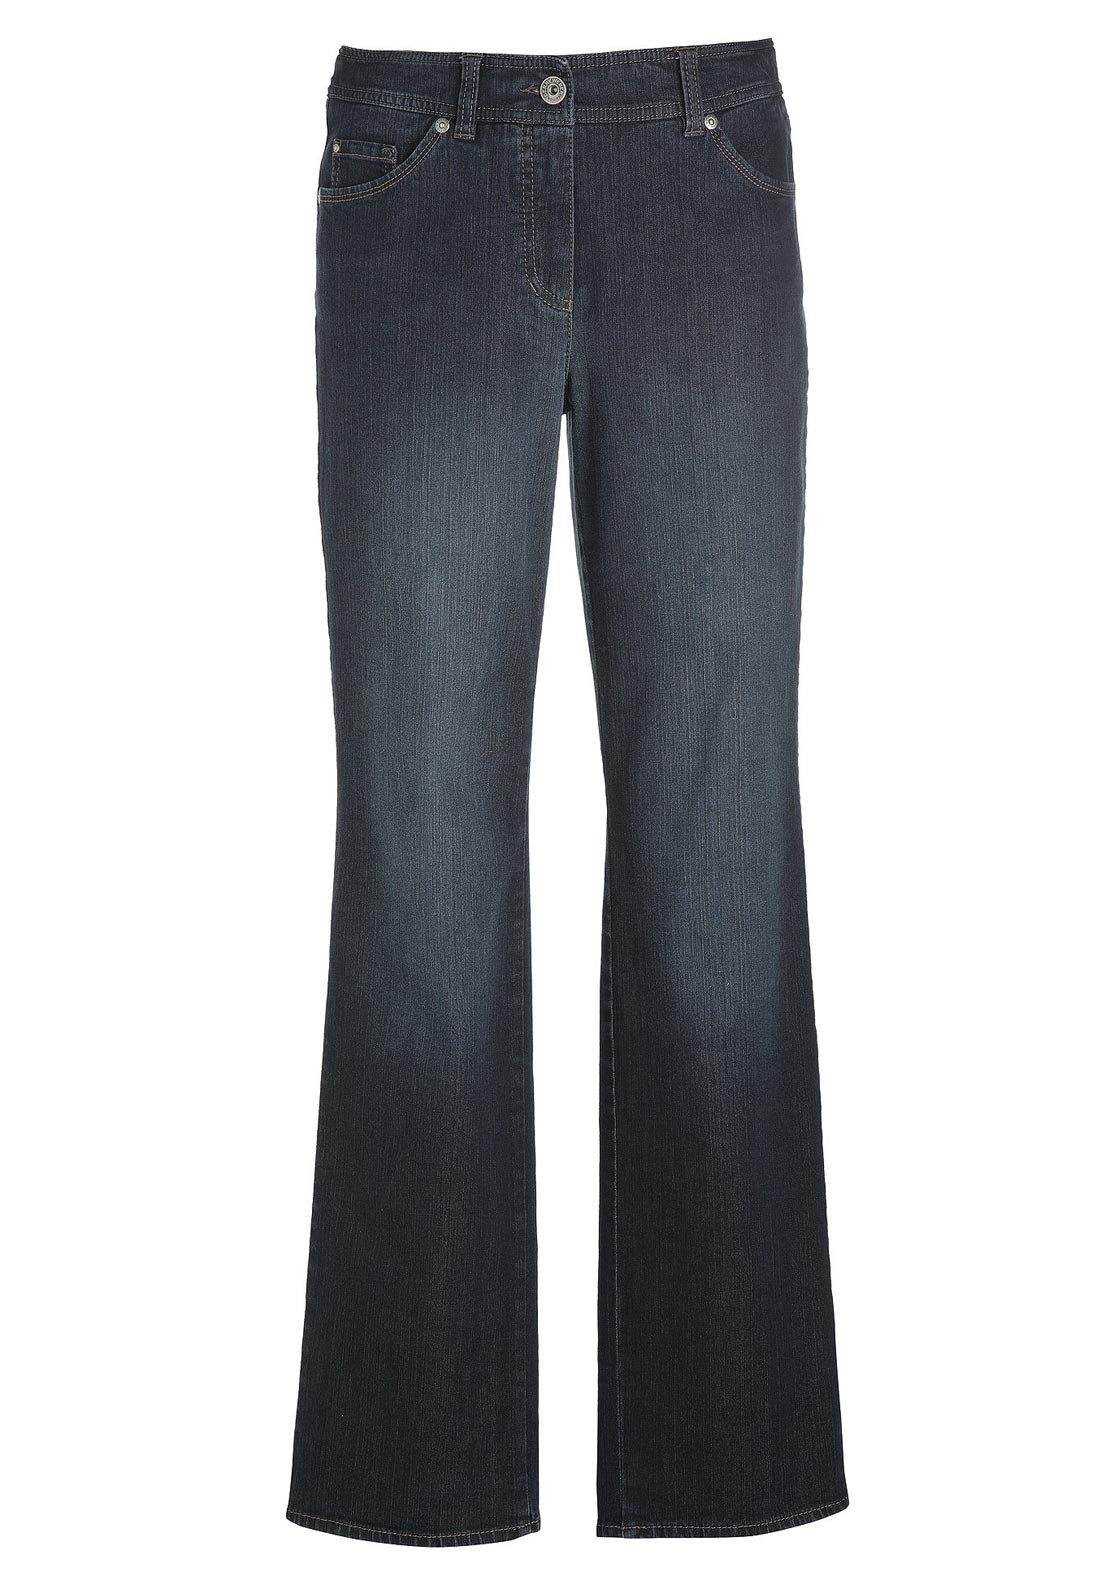 Gerry Weber Danny Wide Leg Jeans, Dark Denim